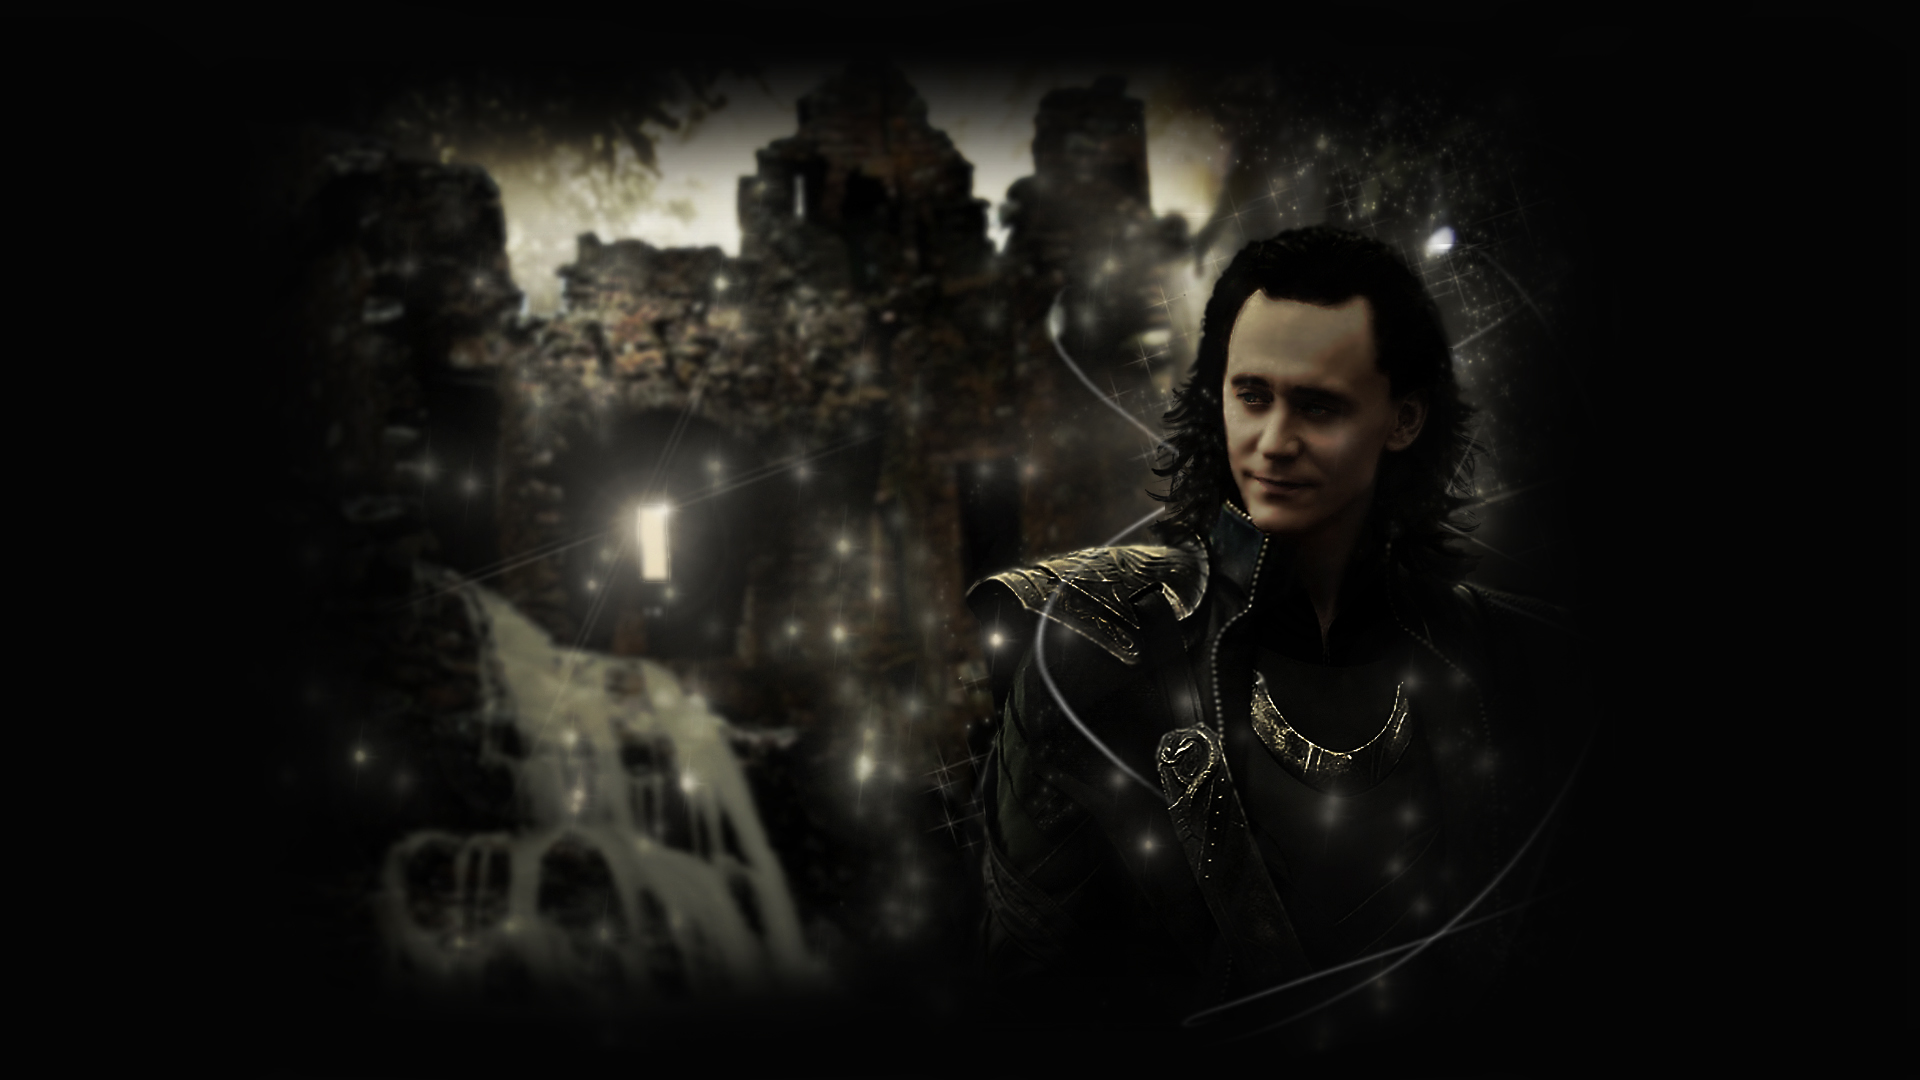 Loki Wallpaper Thor images free download 1920x1080